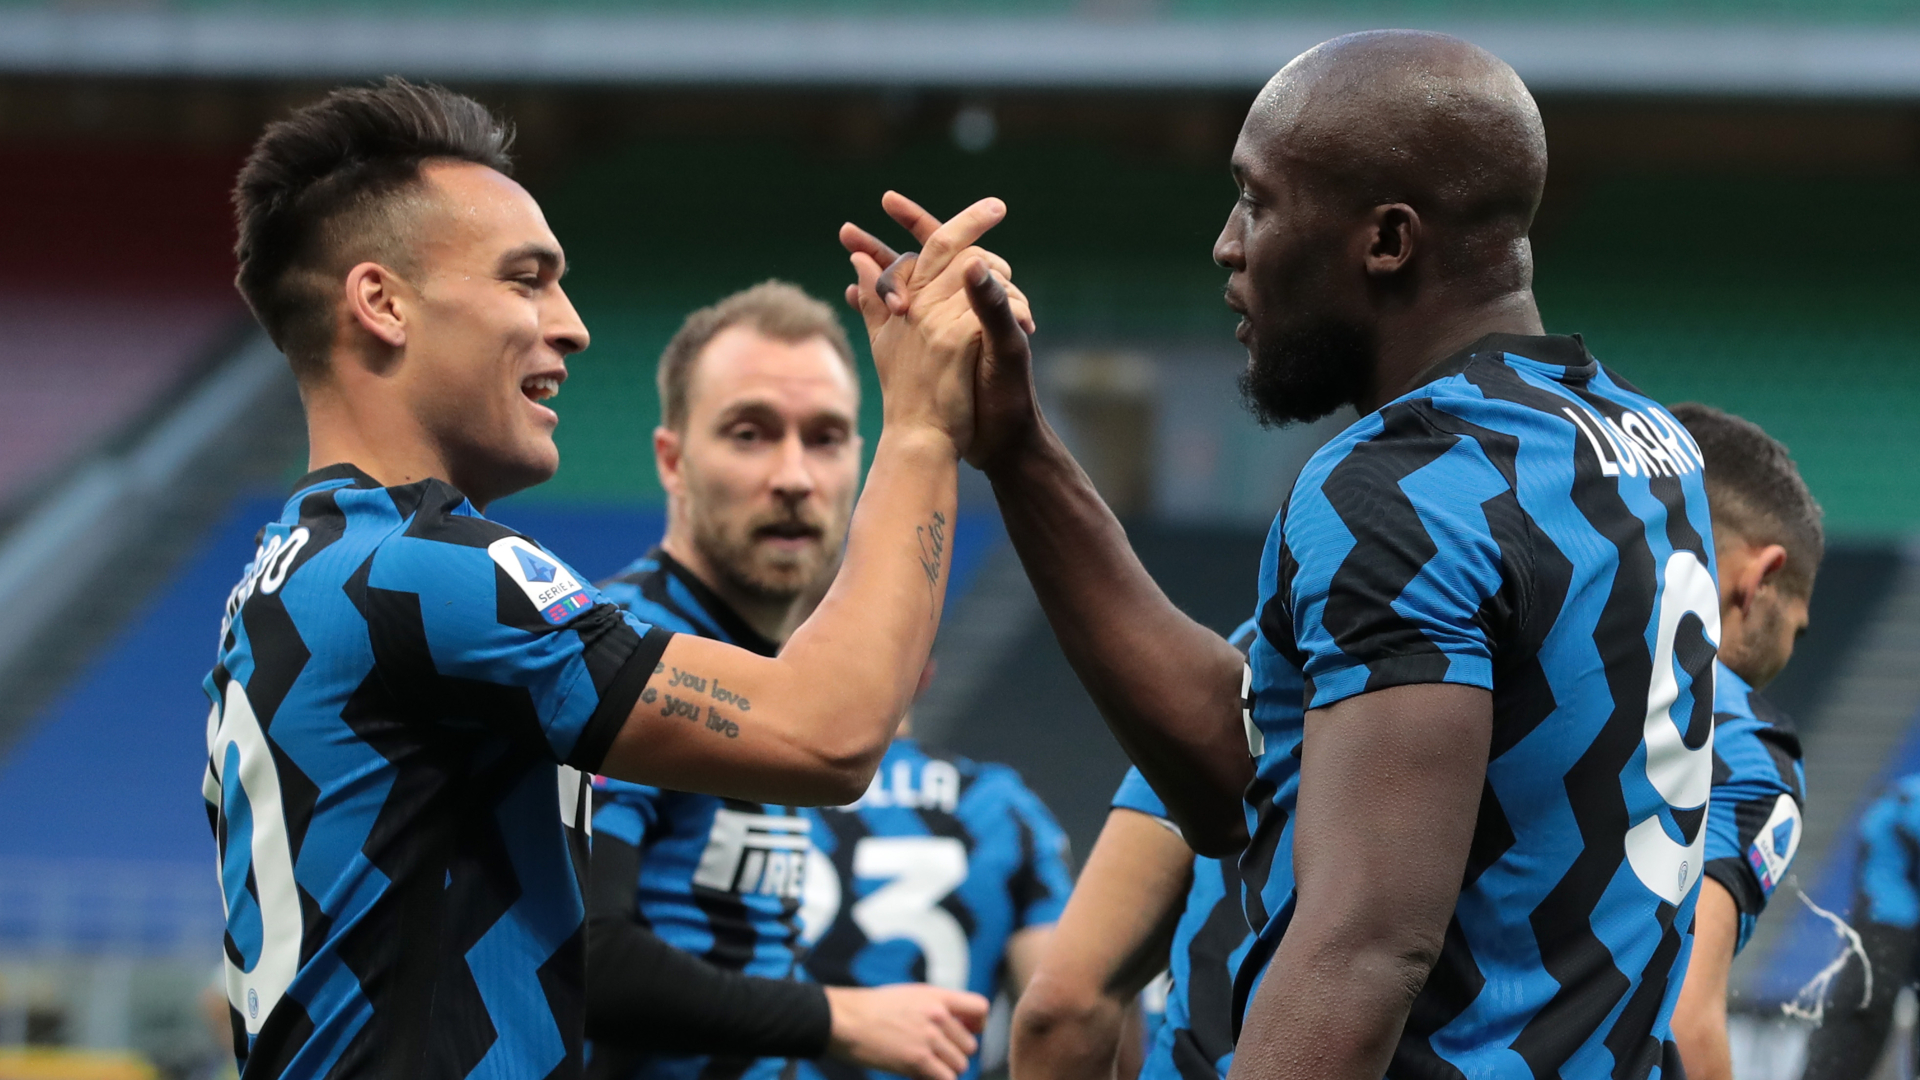 Inter 2-1 Sassuolo: Lukaku on target again as Conte's men go 11 points clear